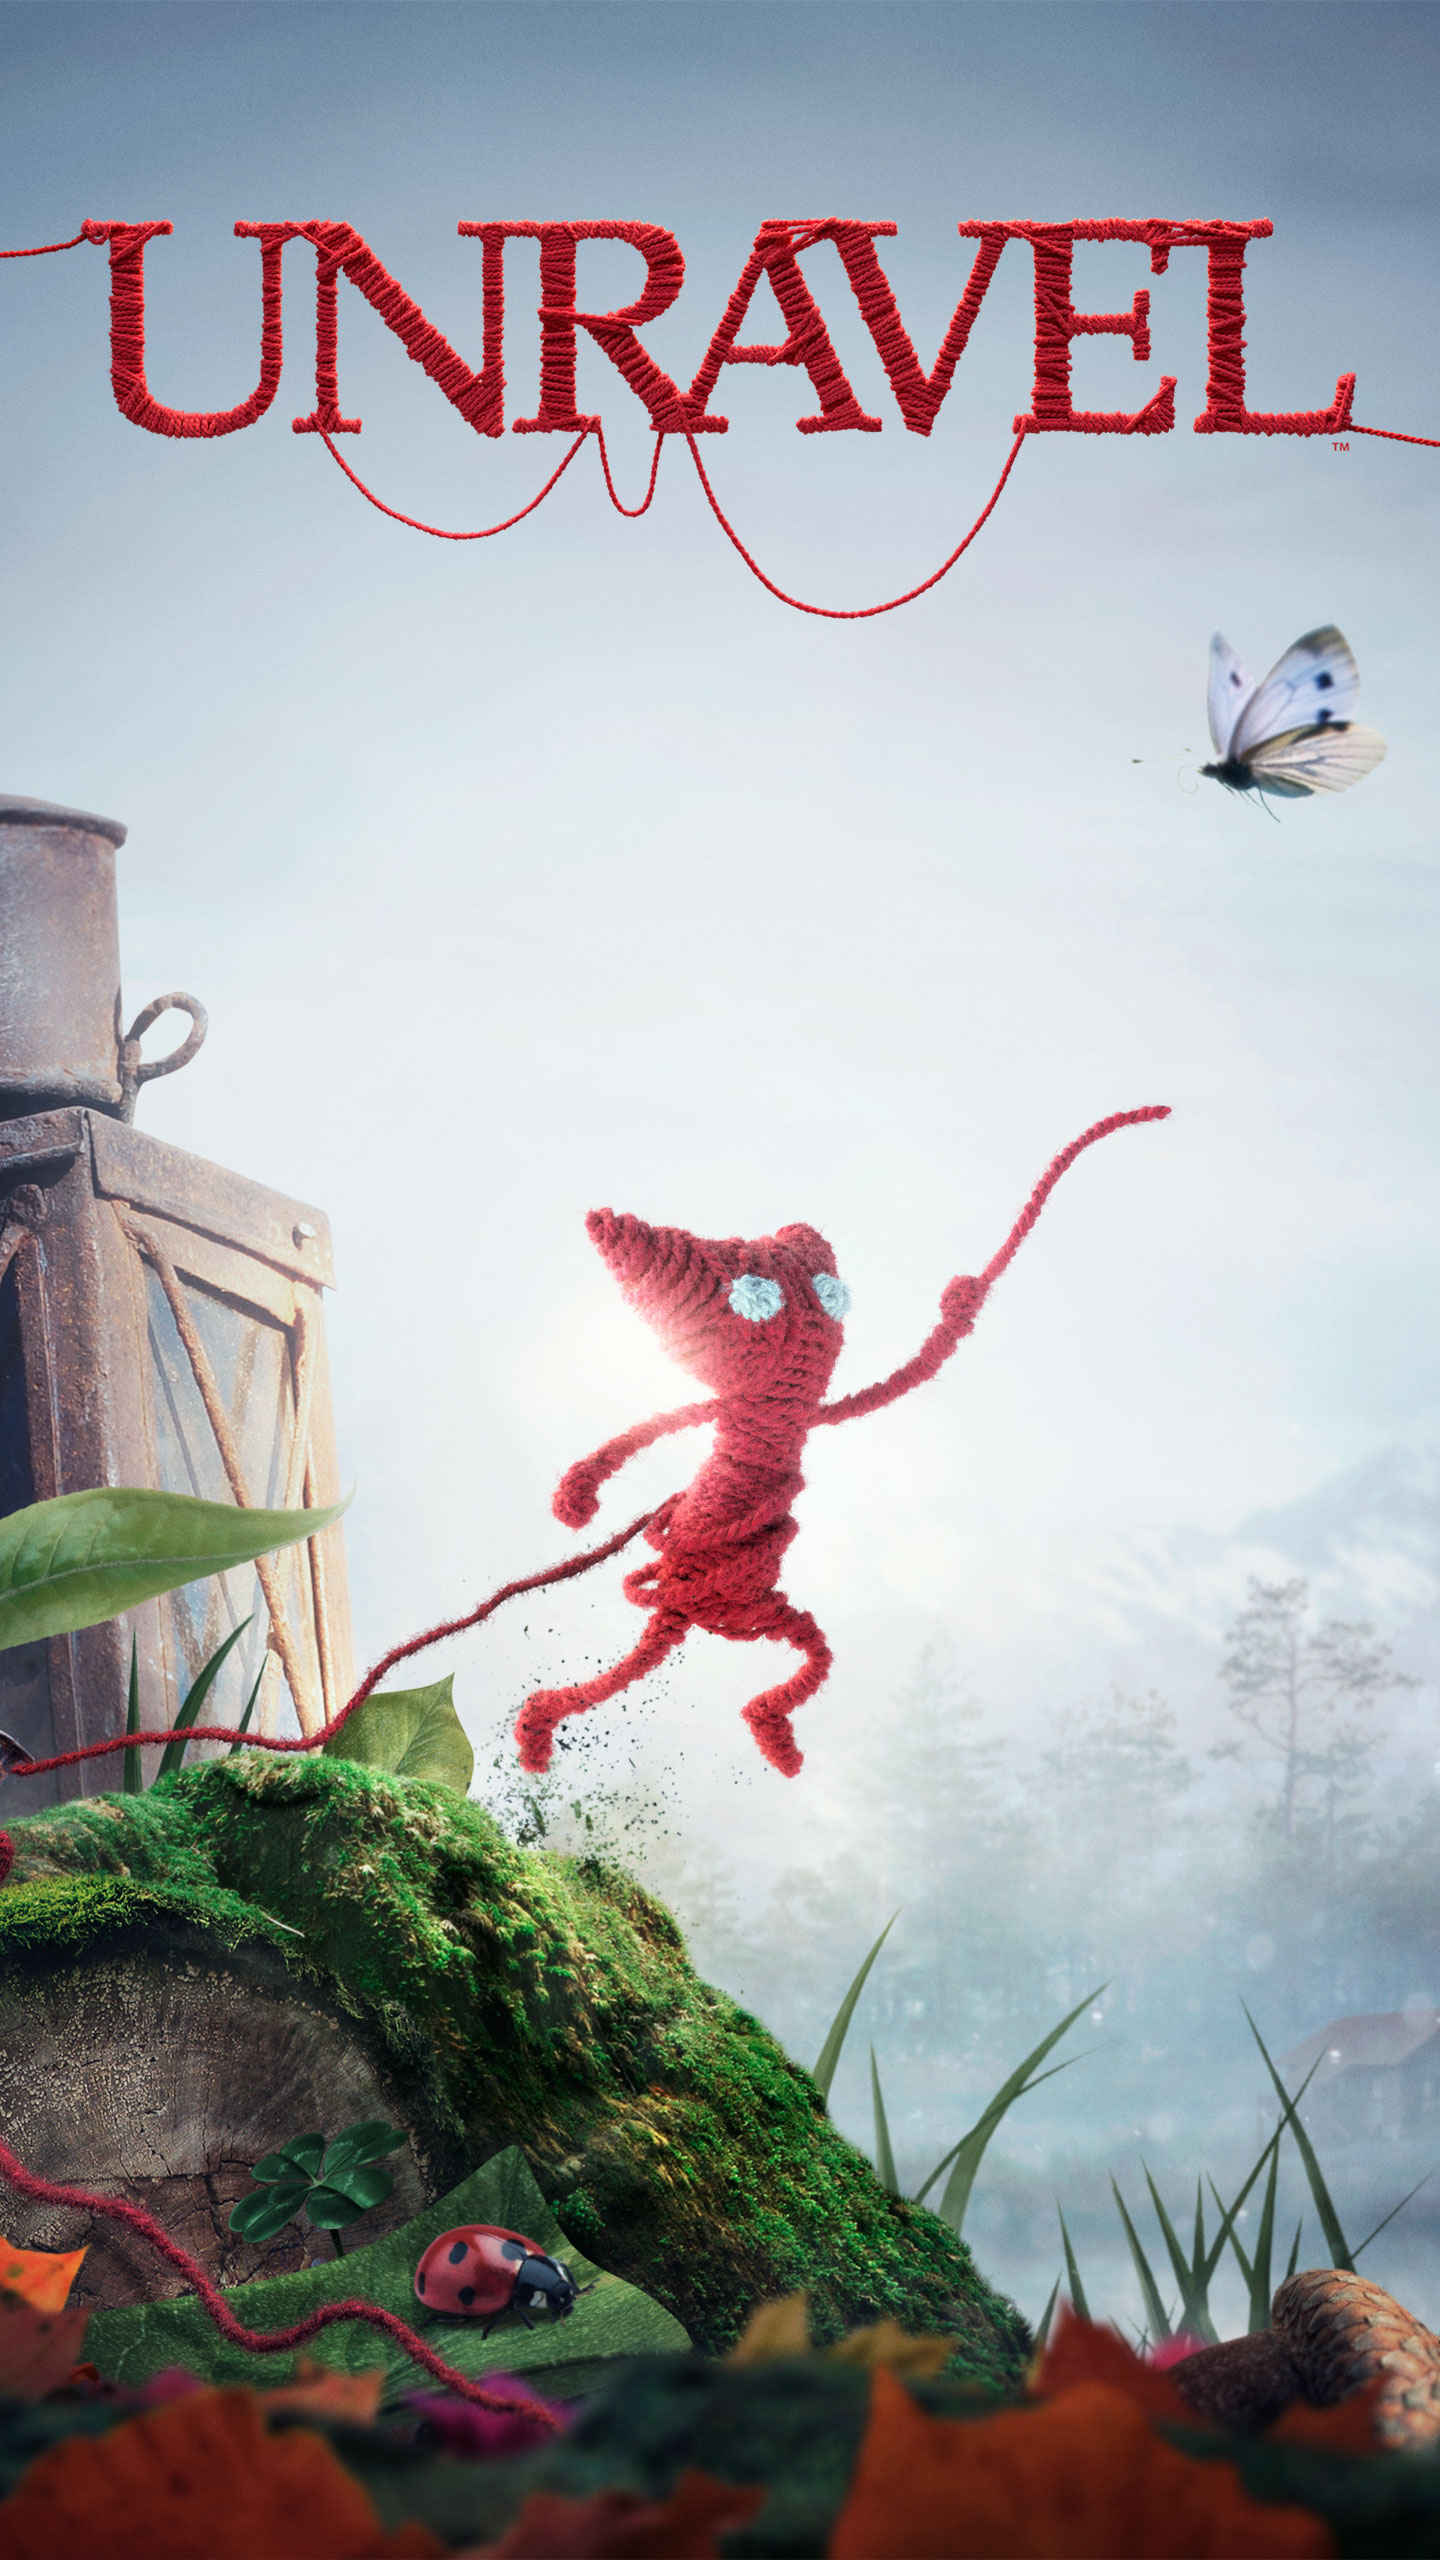 unravel-game-wallpapers-1 Mobile Home Service Agreement on